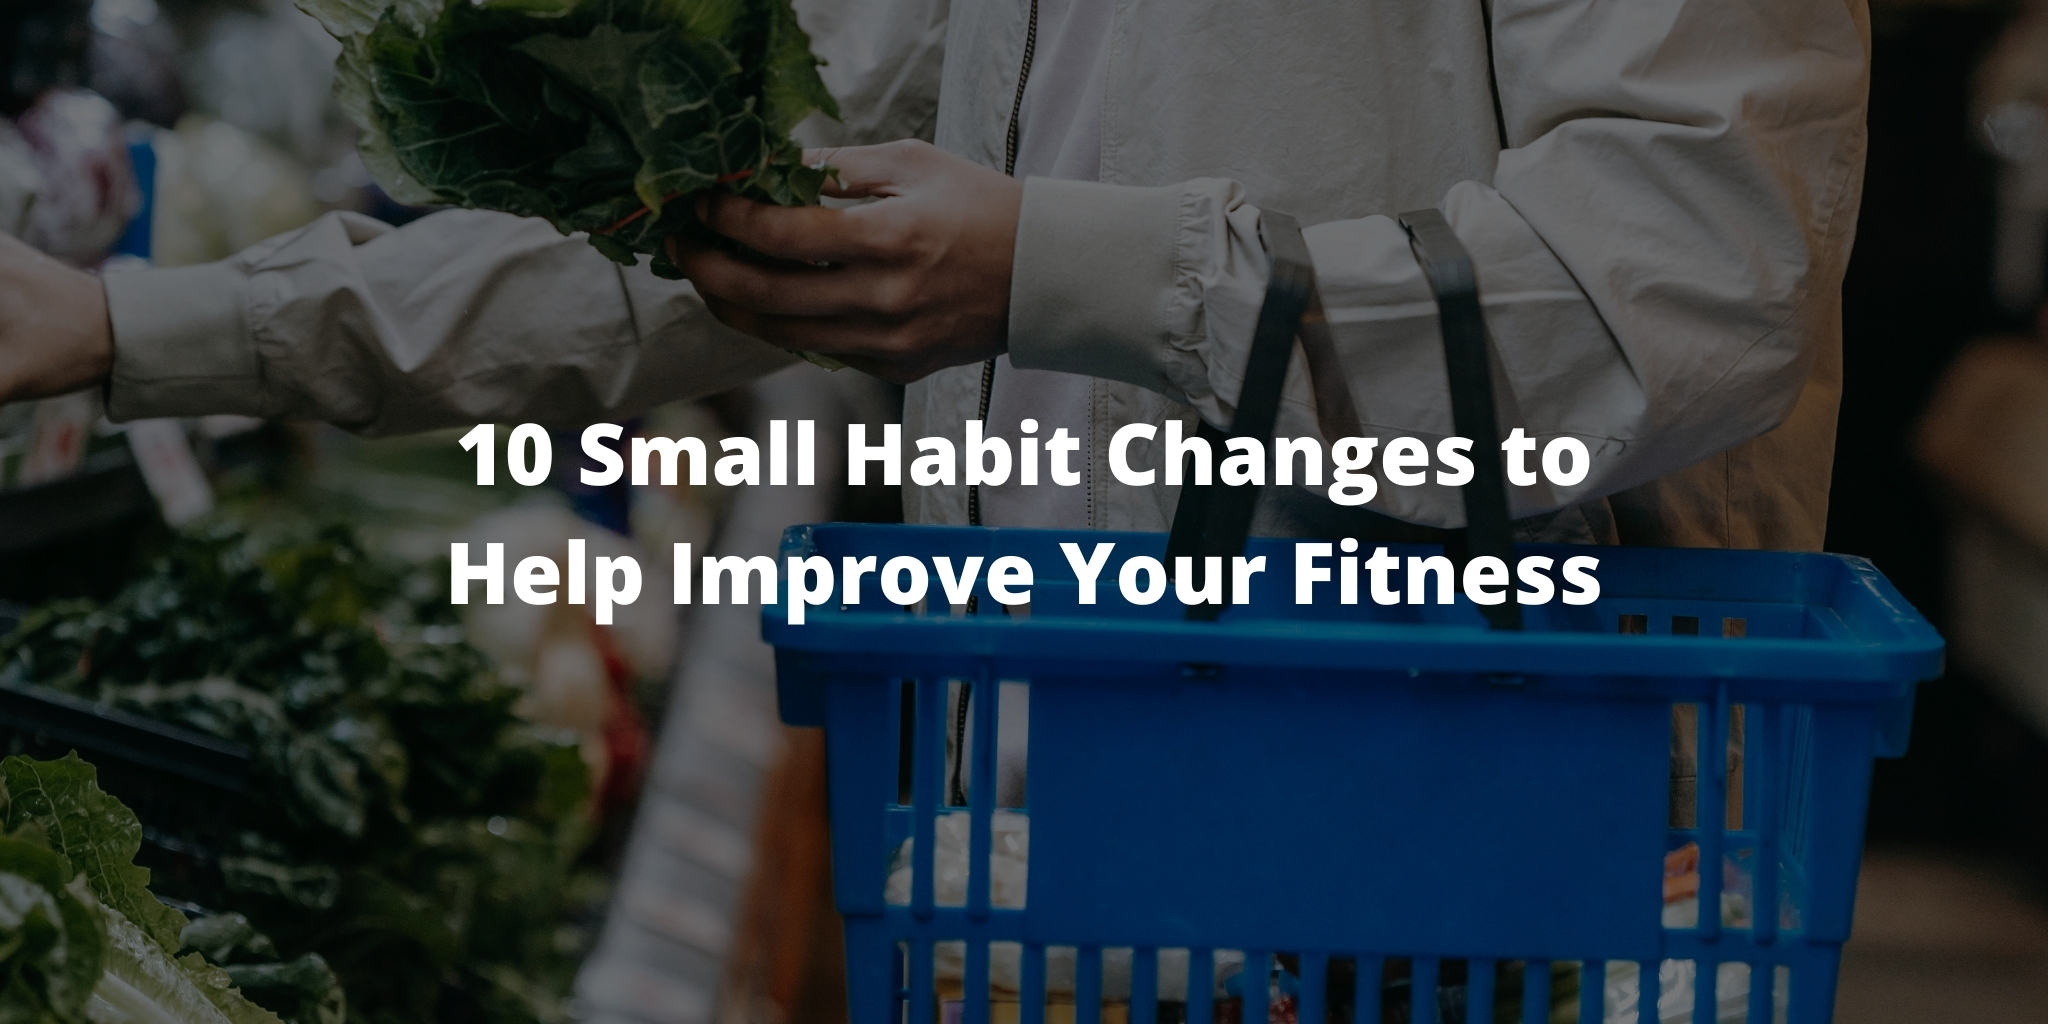 10 Small Habit Changes to Help Improve Your Fitness